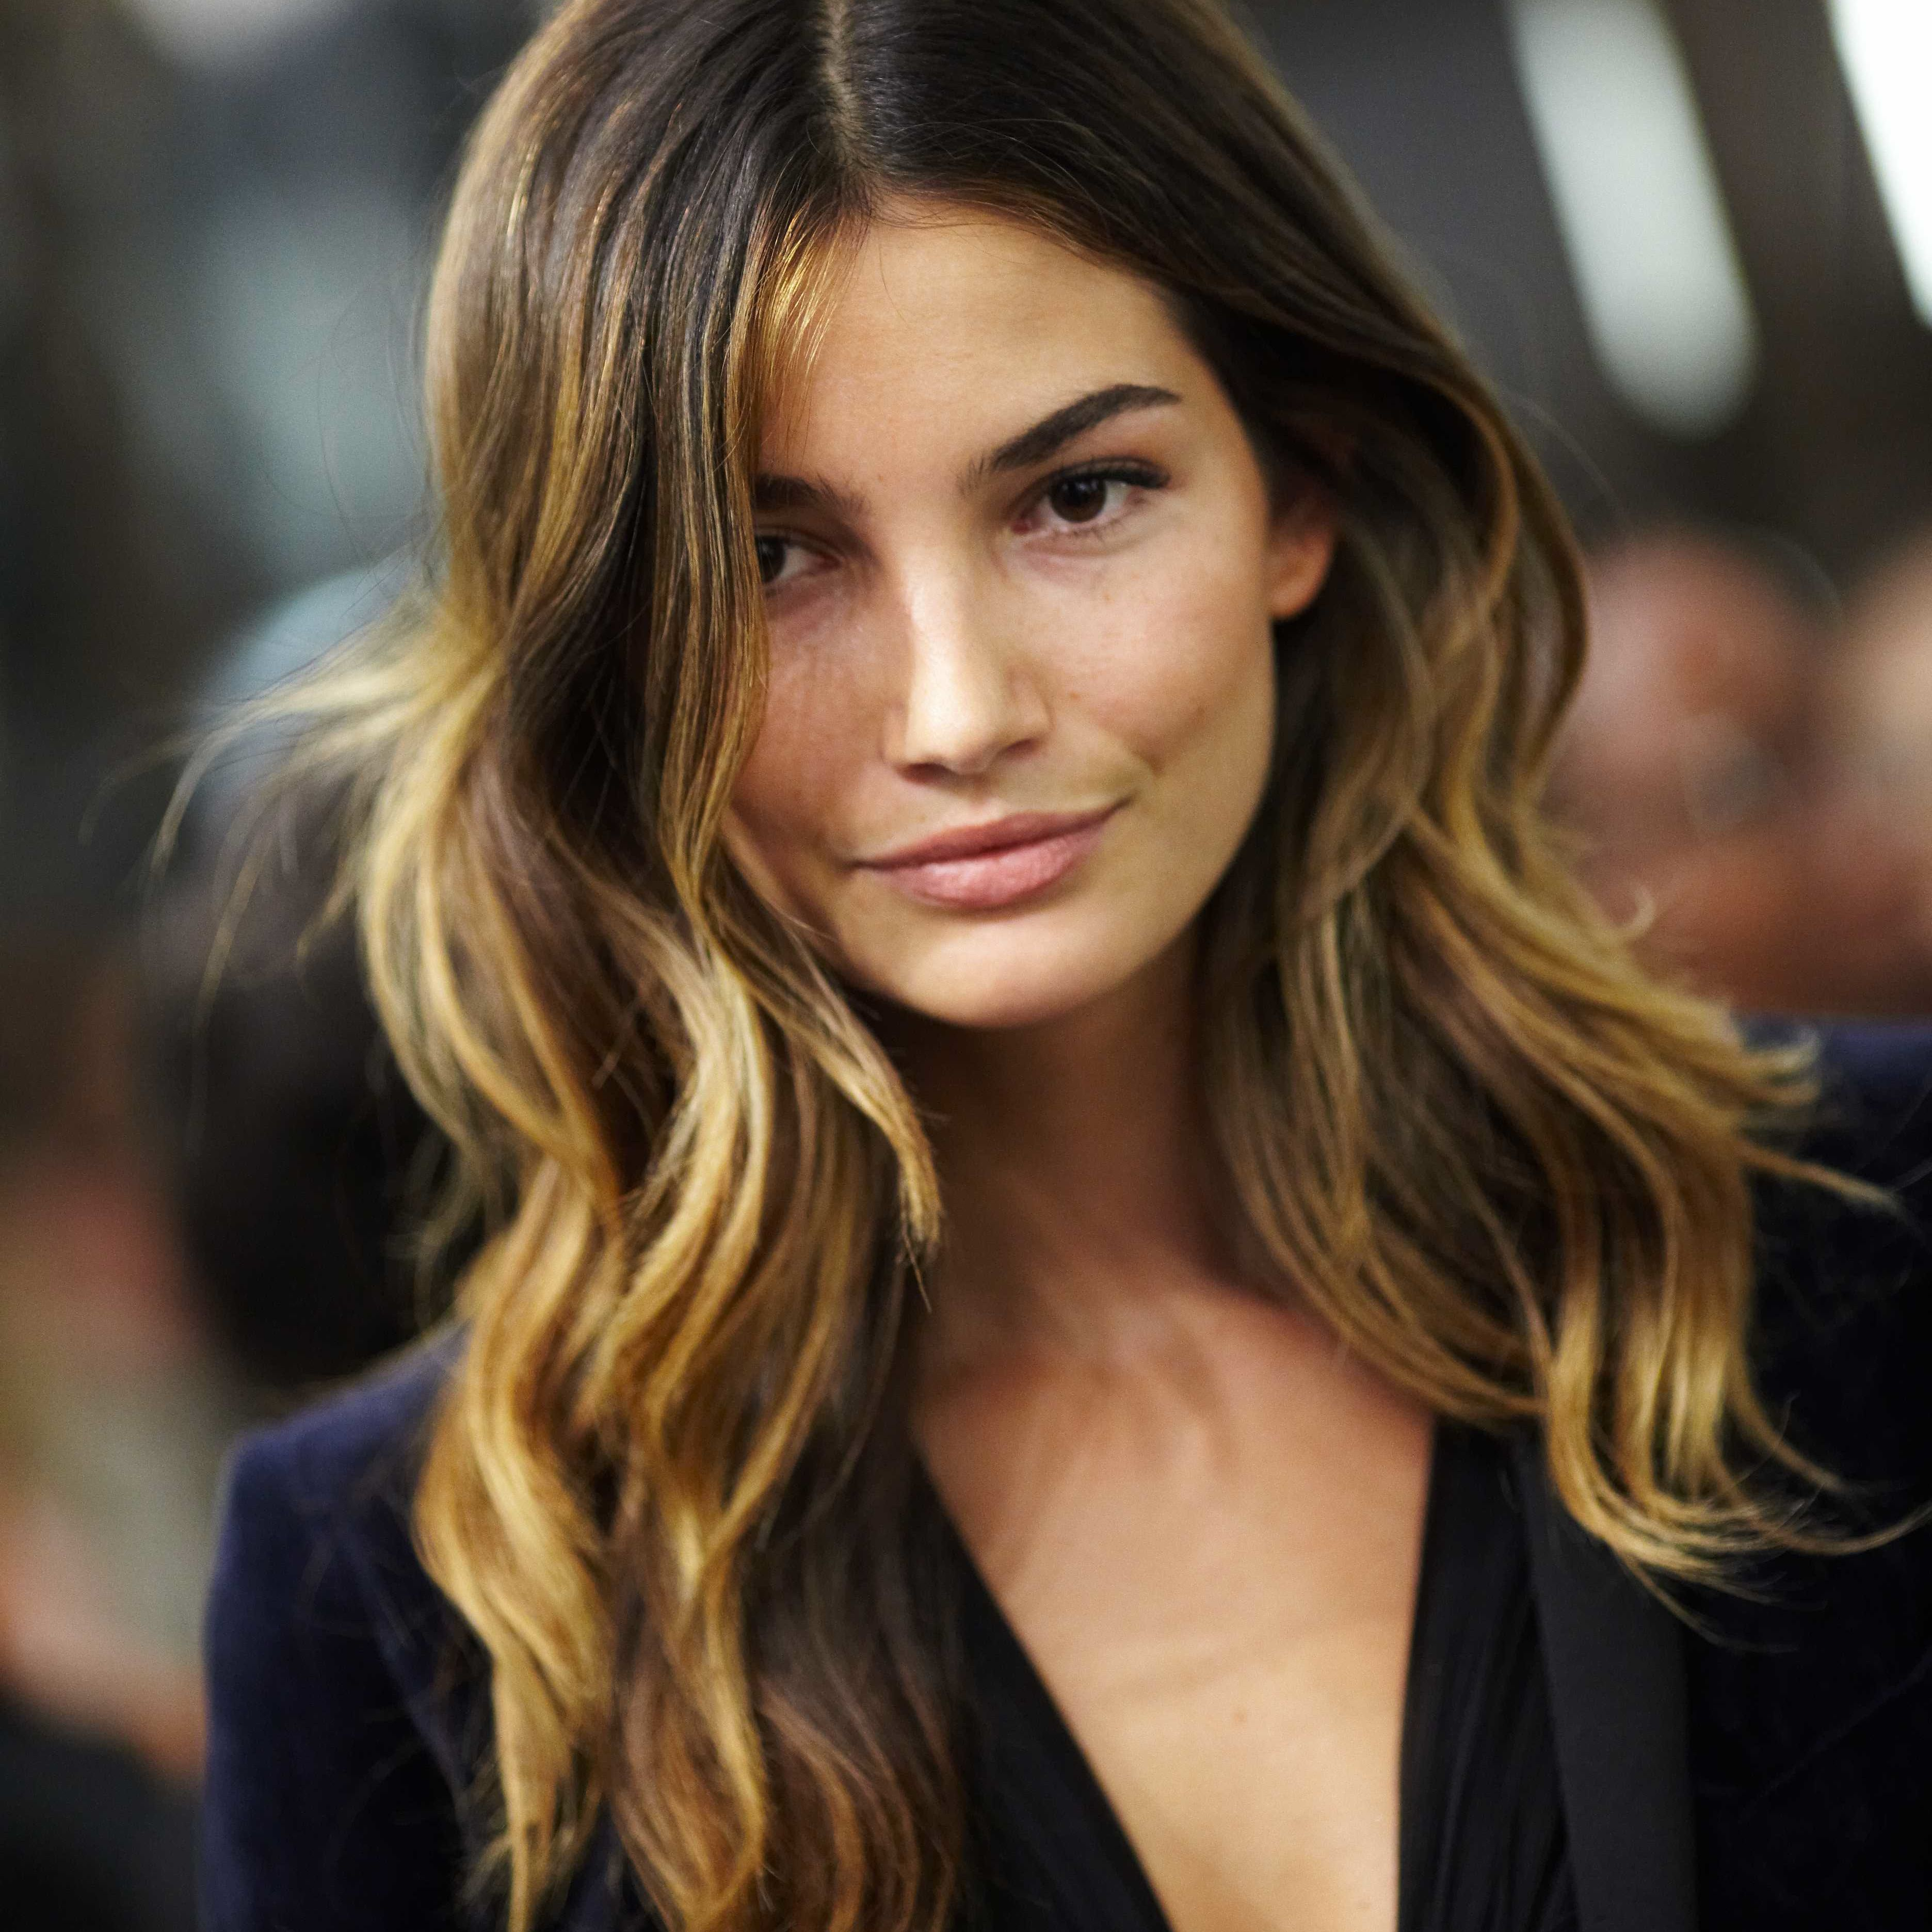 20 Celebrity Photos That Prove Ombre Hair Color is Here to Stay